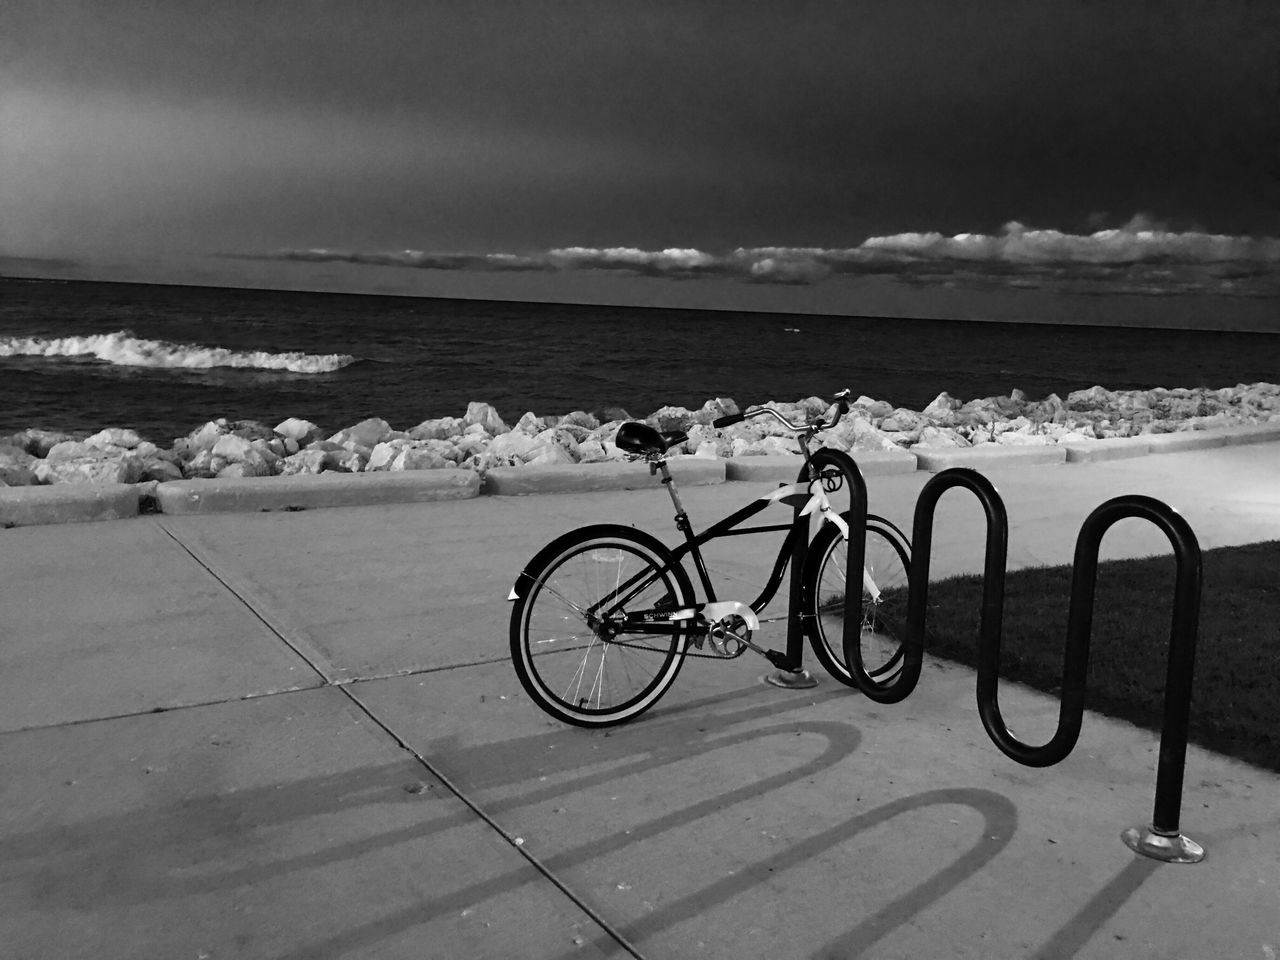 sea, bicycle, water, outdoors, sky, horizon over water, nature, beach, day, no people, transportation, bicycle rack